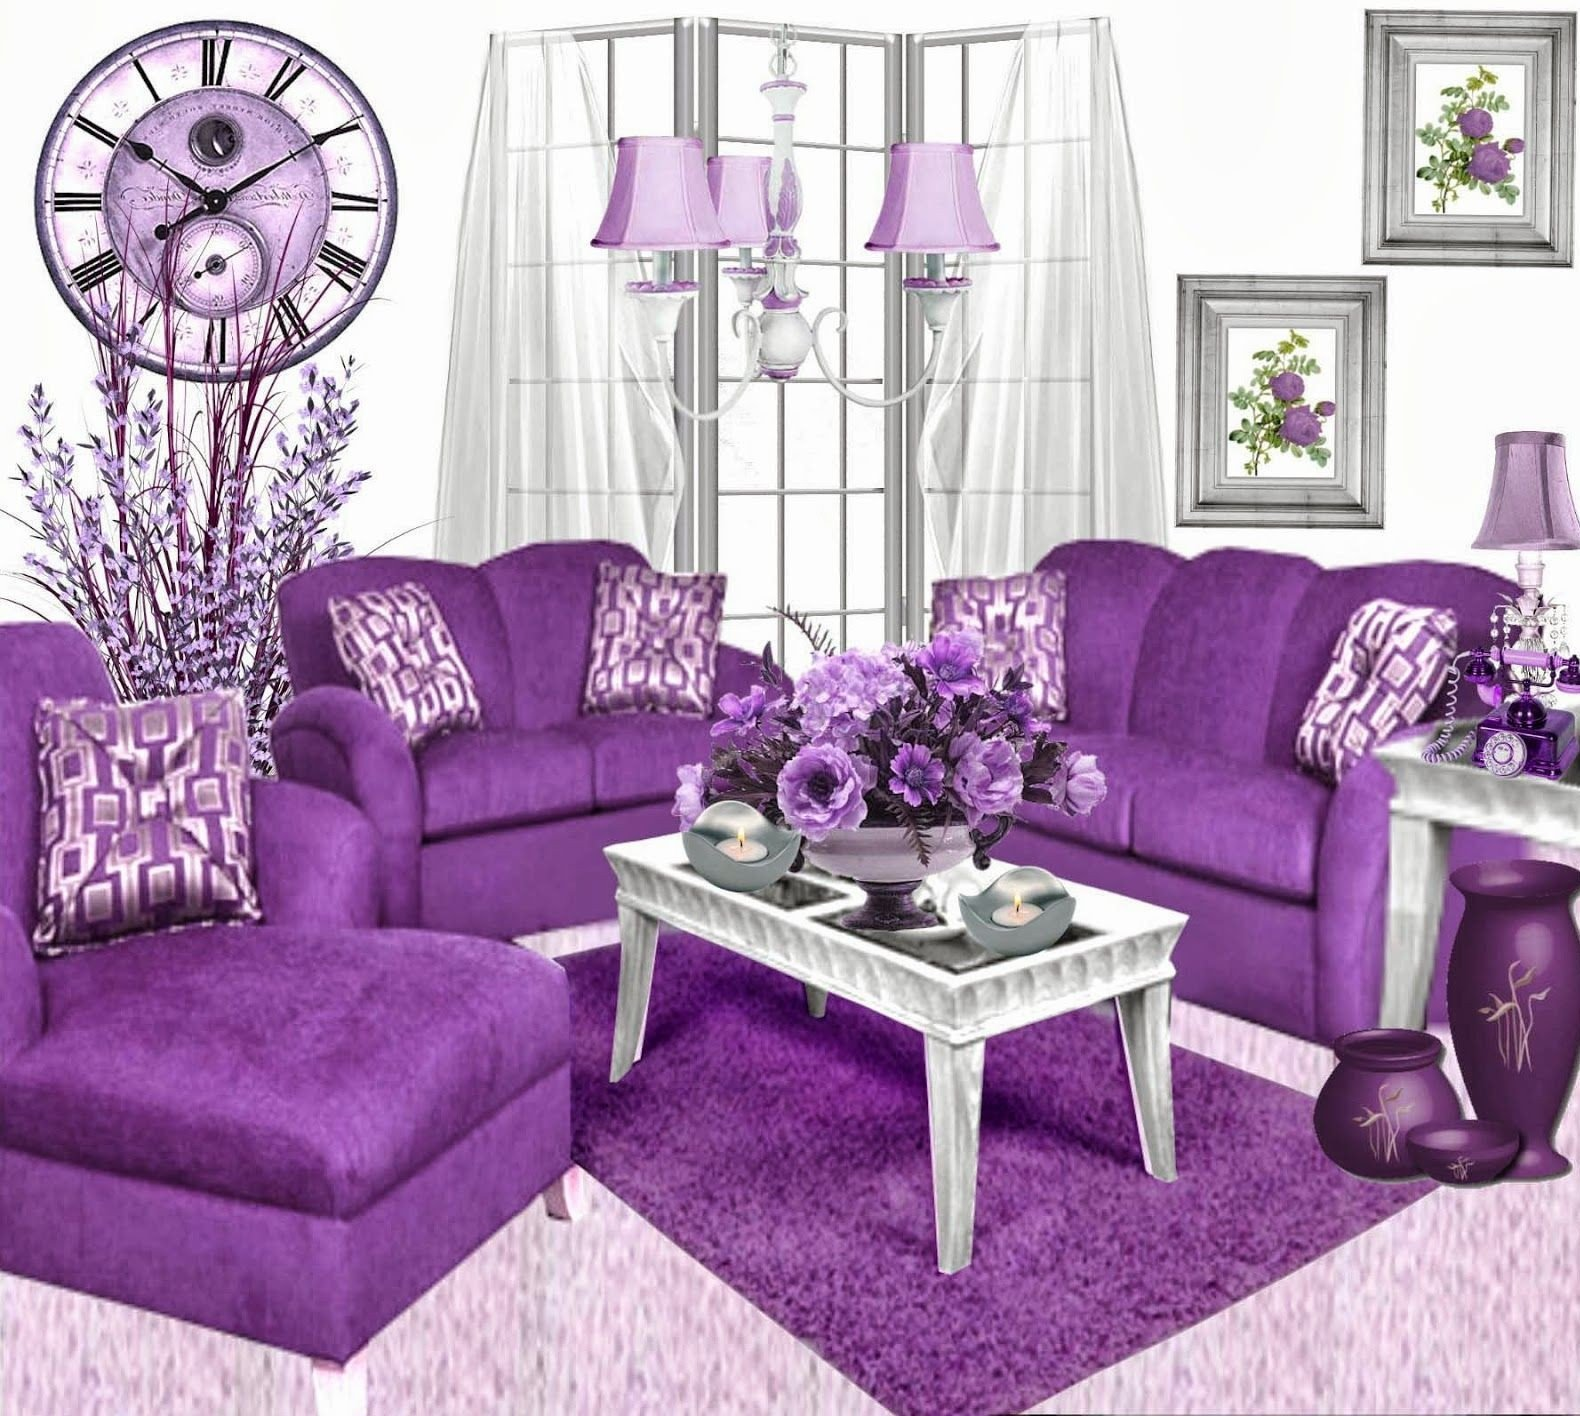 Purple Decor for Living Room Best Of Tips On Decorating Purple Living Room Decorating Room